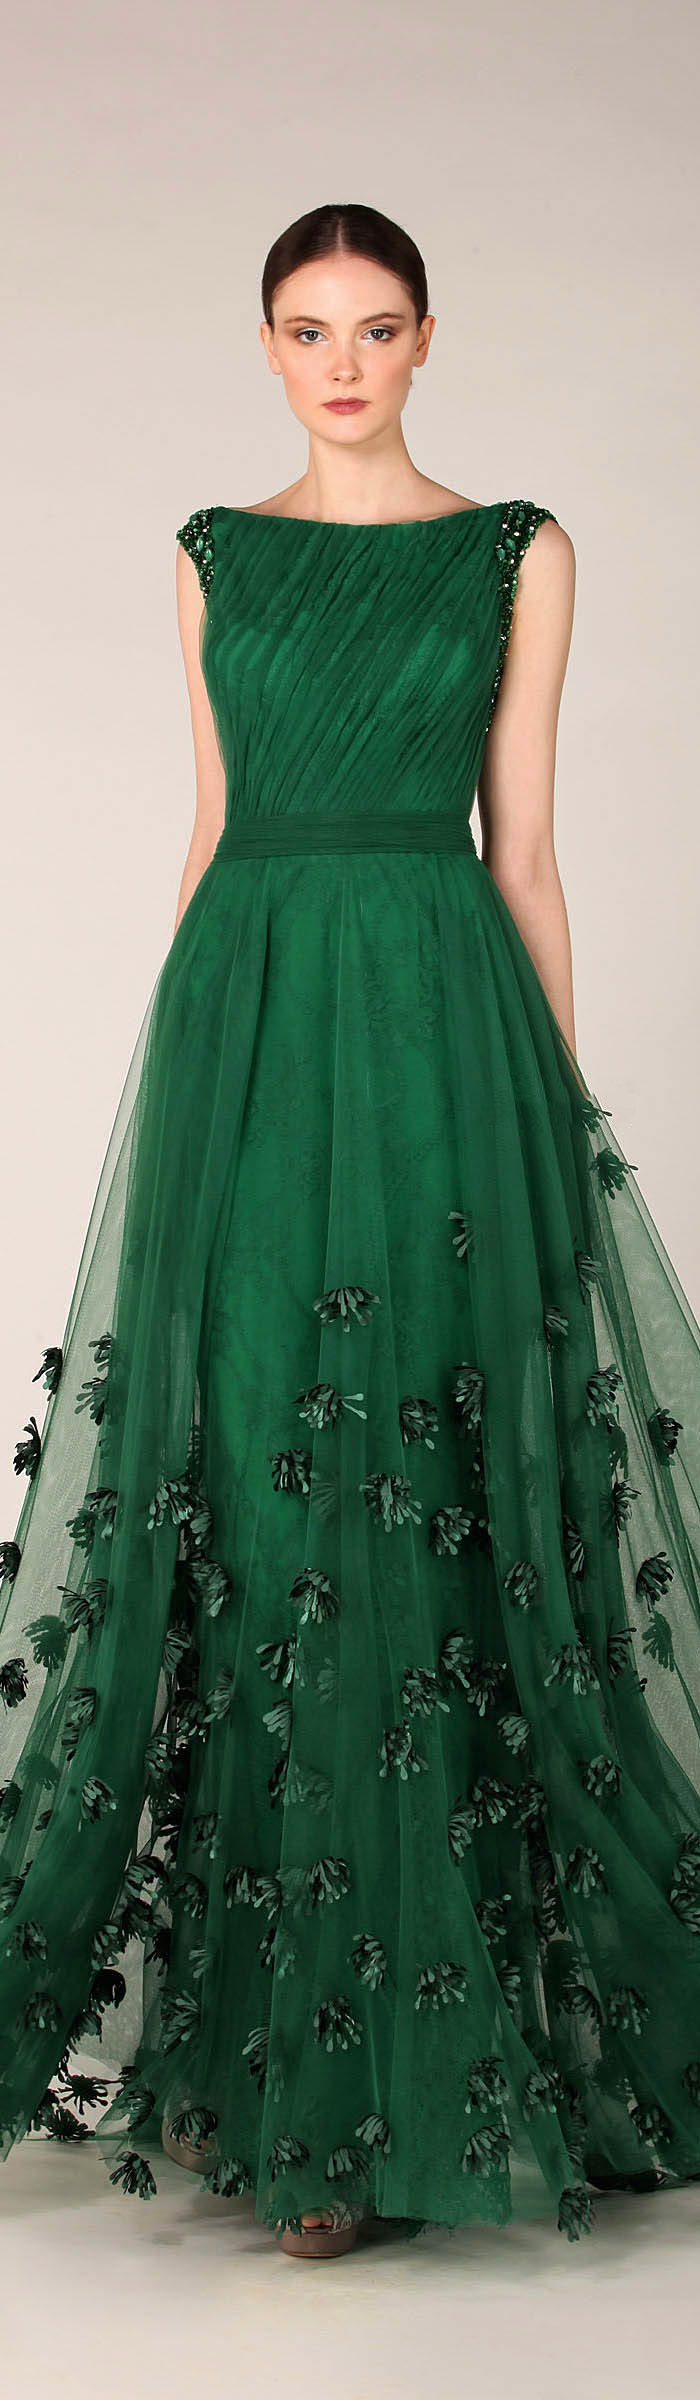 Tony Ward Fall Winter 2013-2014 – Fashion Diva Design